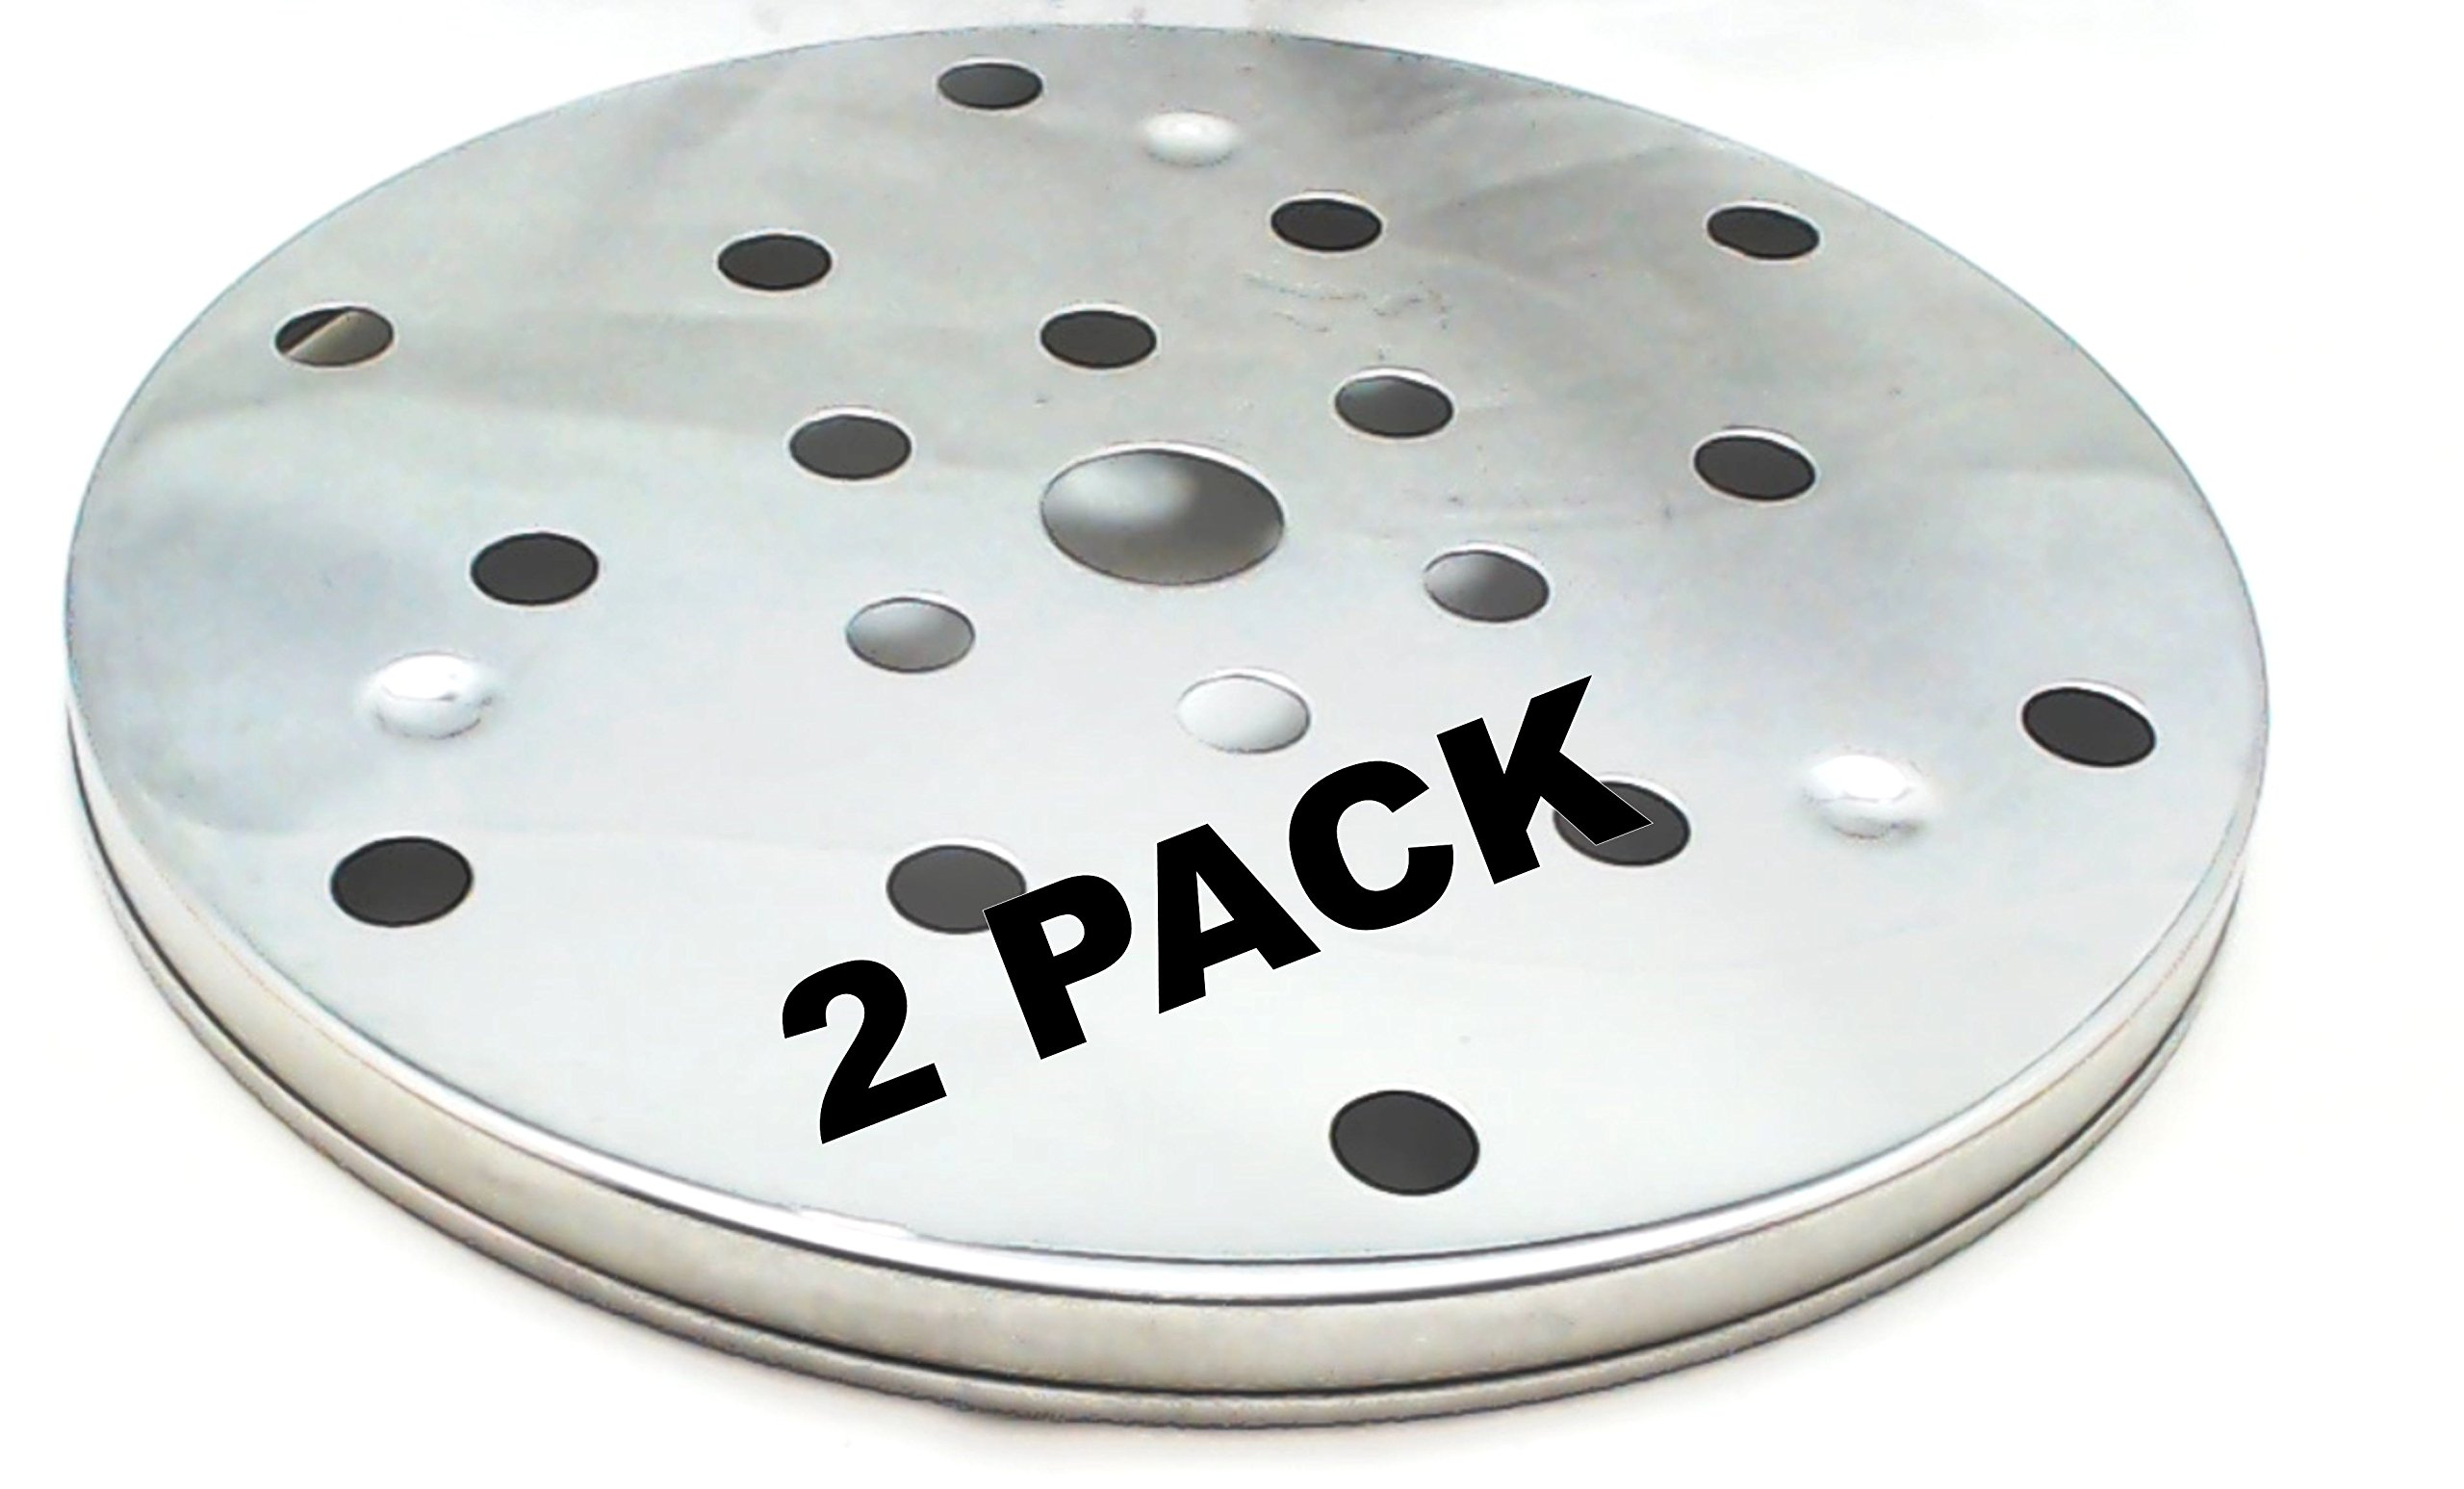 2 Pk, Presto Pressure Cooker Stainless Steel Cooking Rack, 44276, 85885